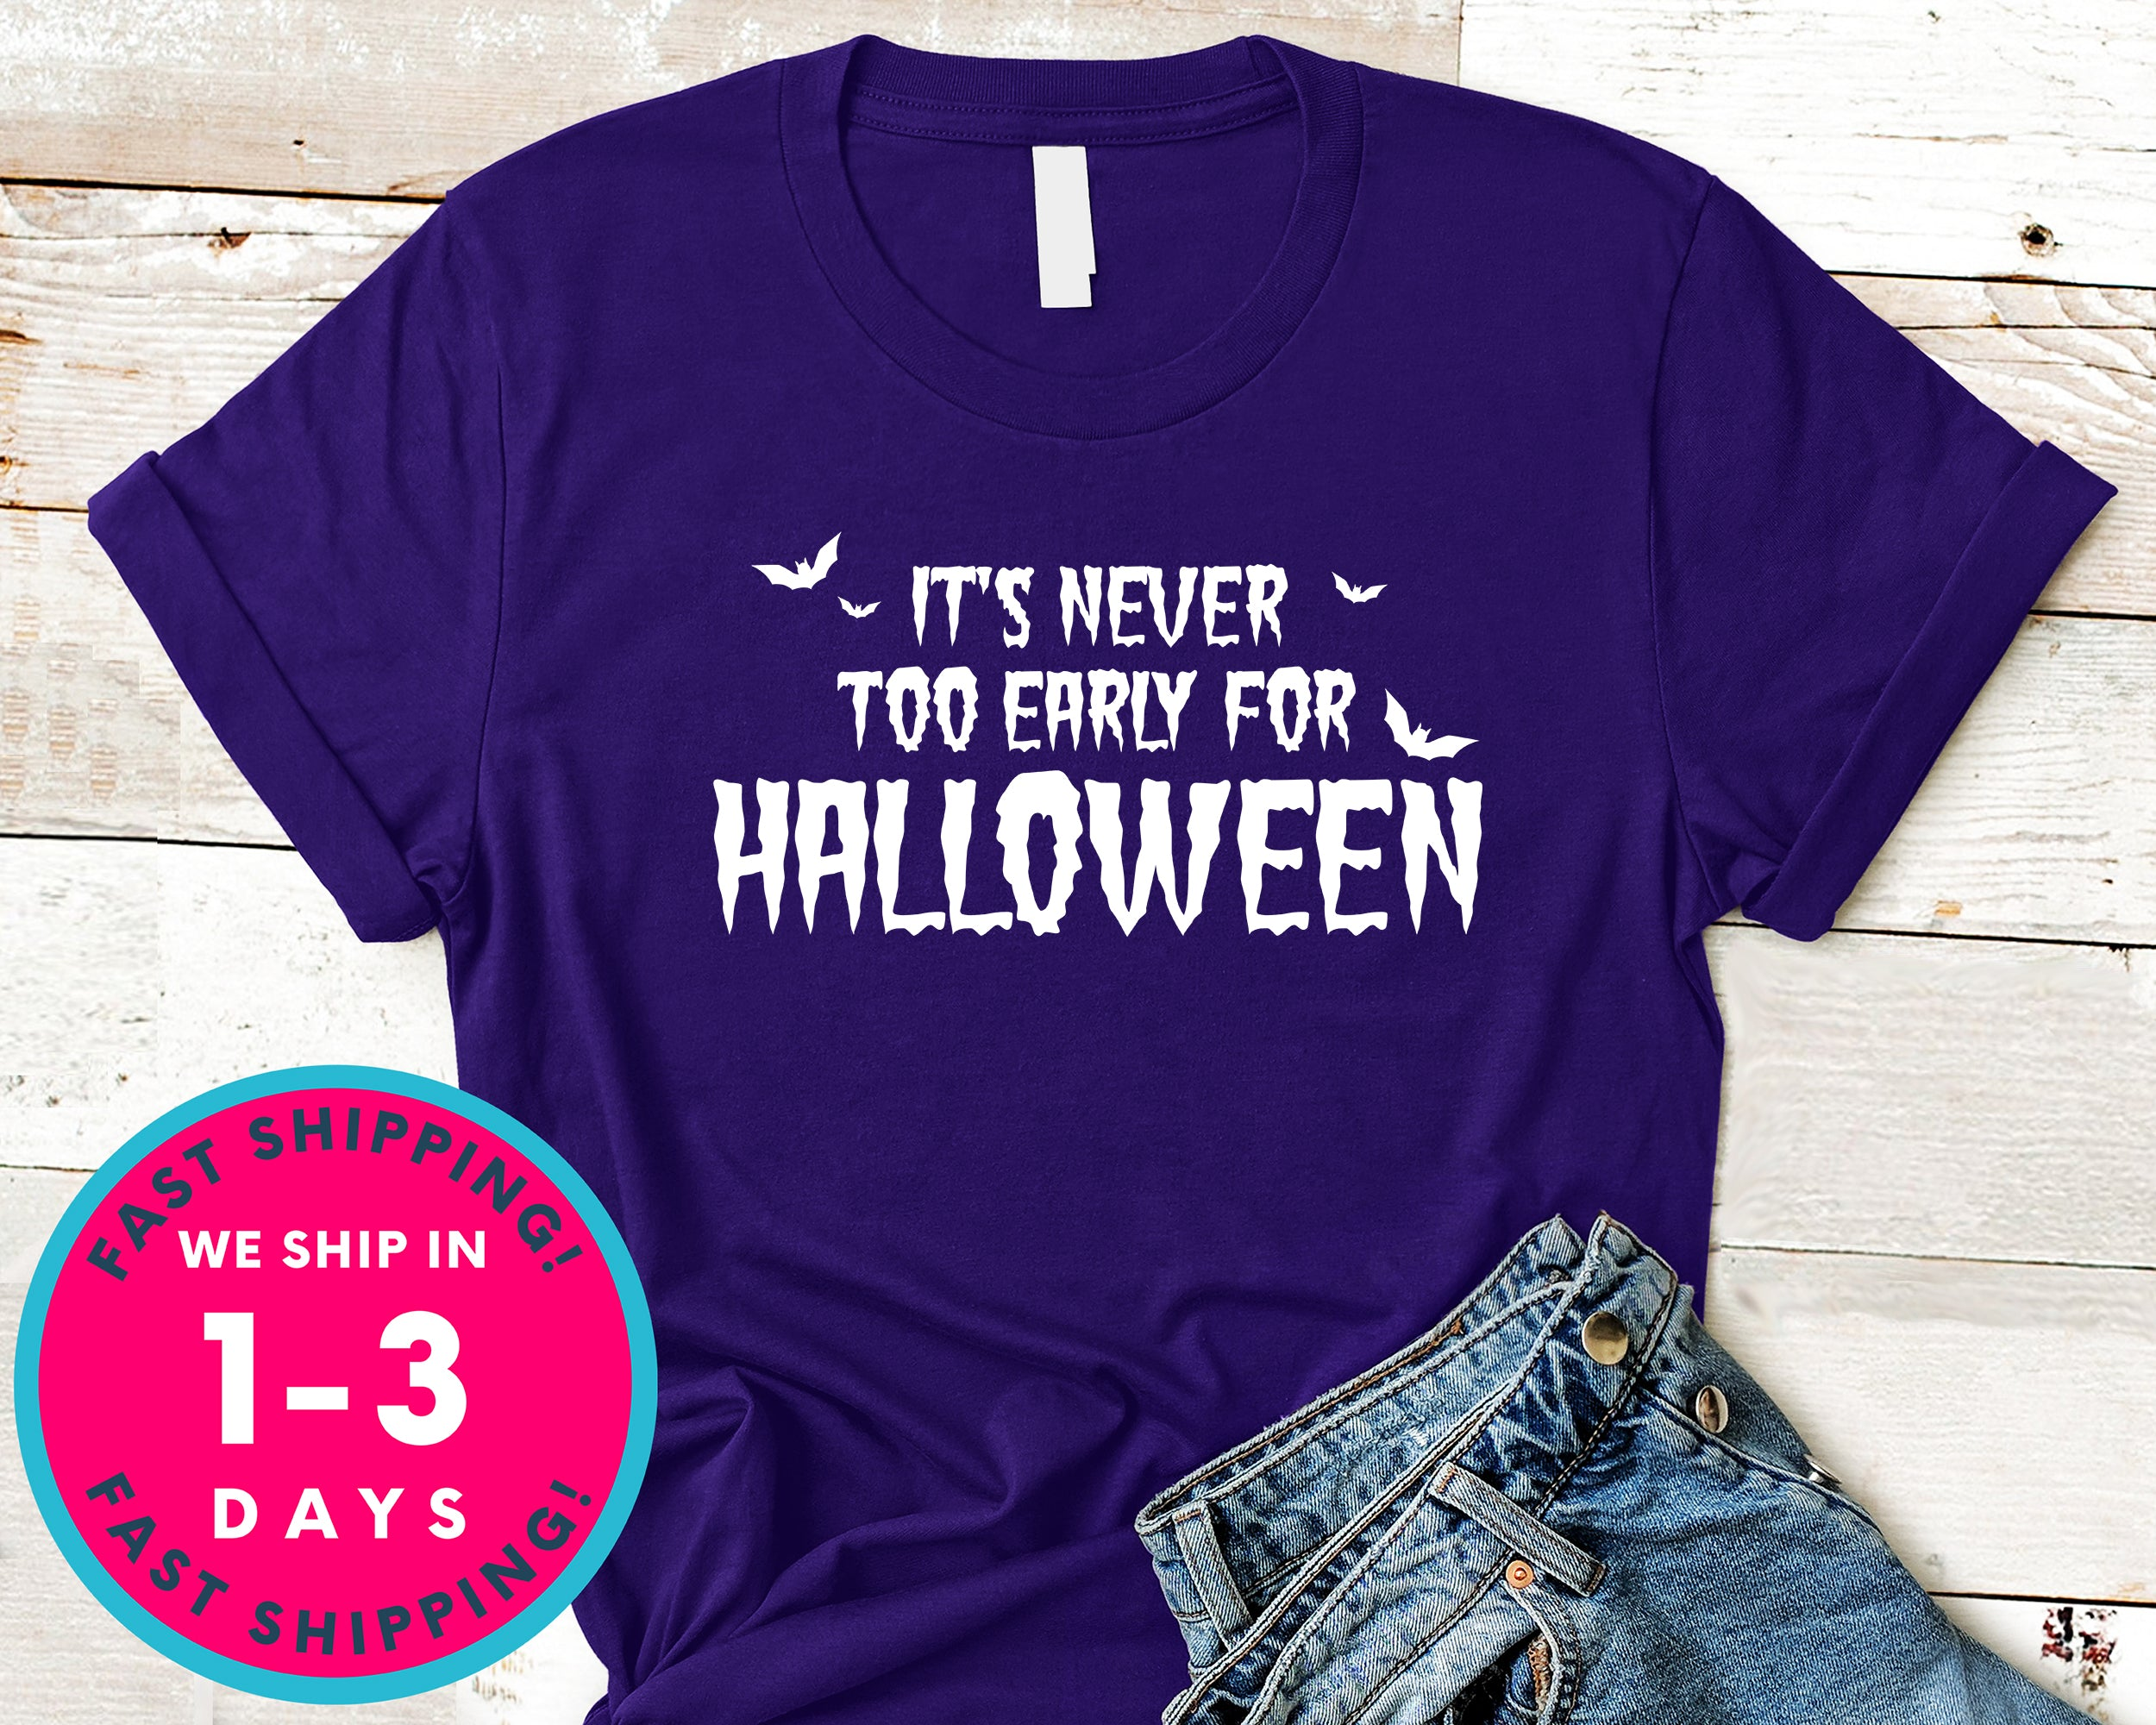 It's Never Too Early For Halloween T-Shirt - Halloween Horror Scary Shirt